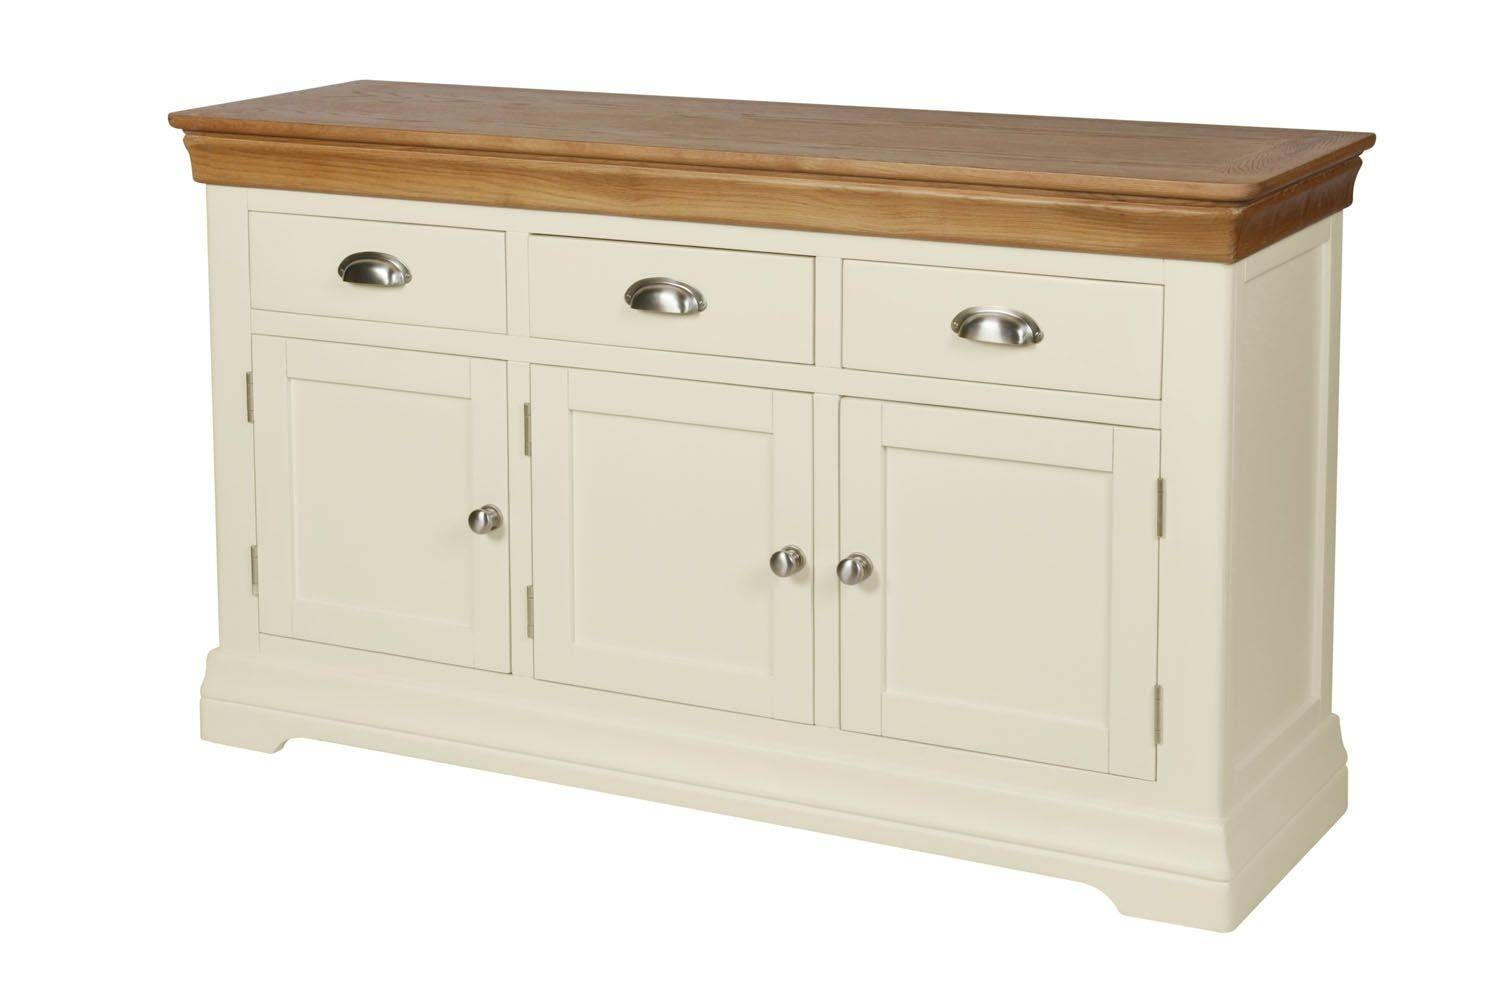 Country Oak Farmhouse 140cm Cream Painted Sideboard Intended For Farmhouse Sideboards (View 9 of 15)